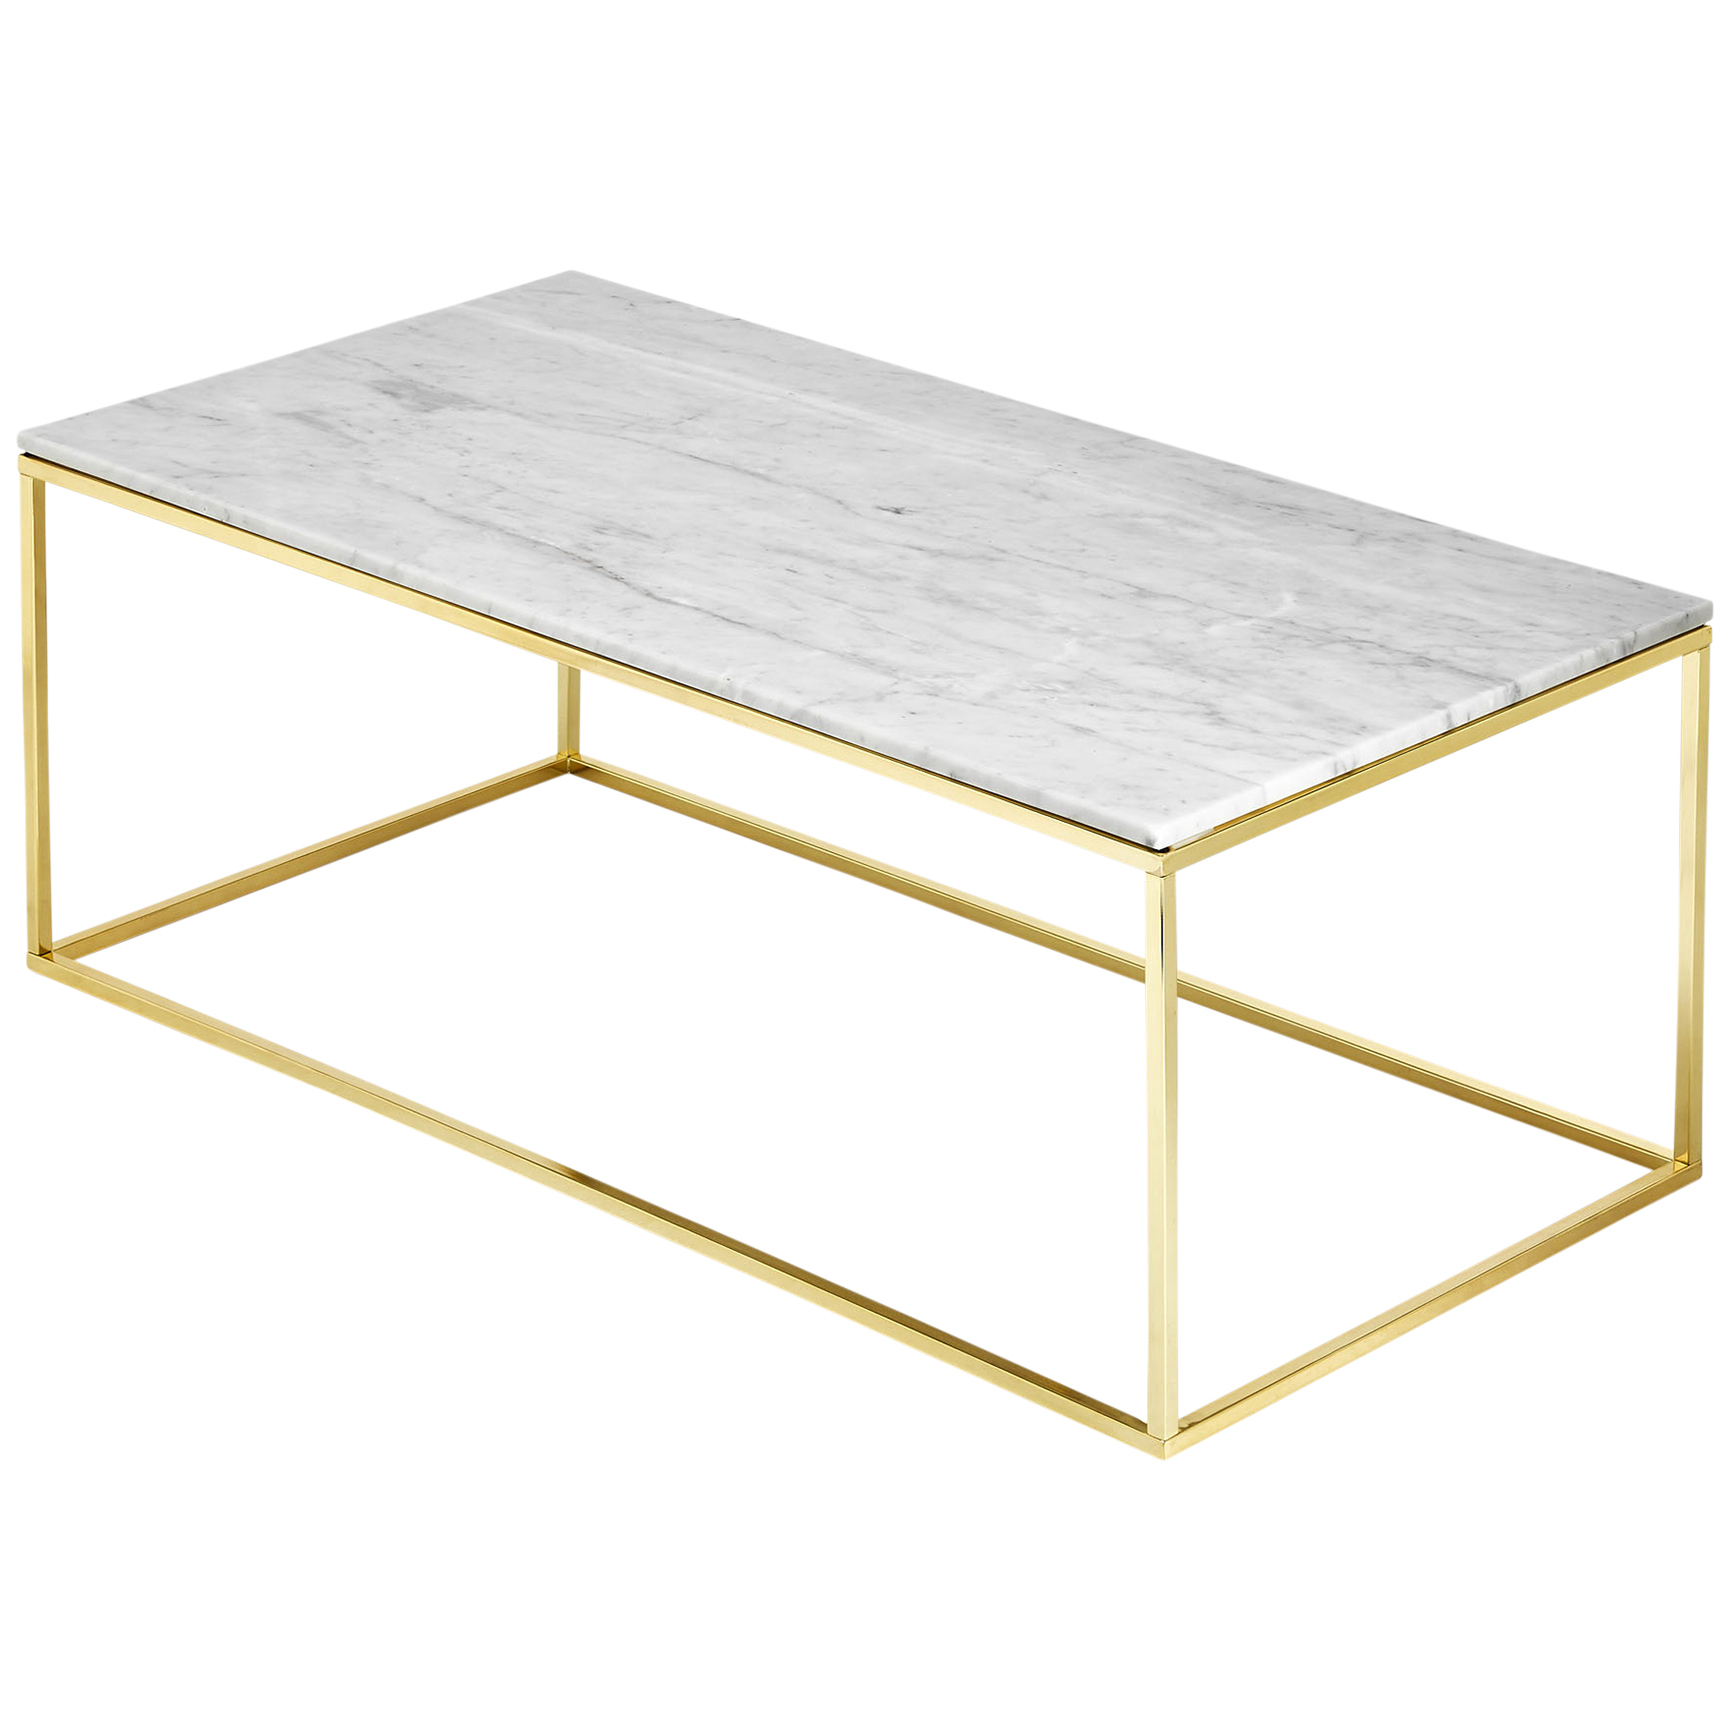 Preferred Go Cart White Rolling Coffee Tables Throughout Estudio Furniture Como White Marble Coffee Table & Reviews (View 18 of 20)